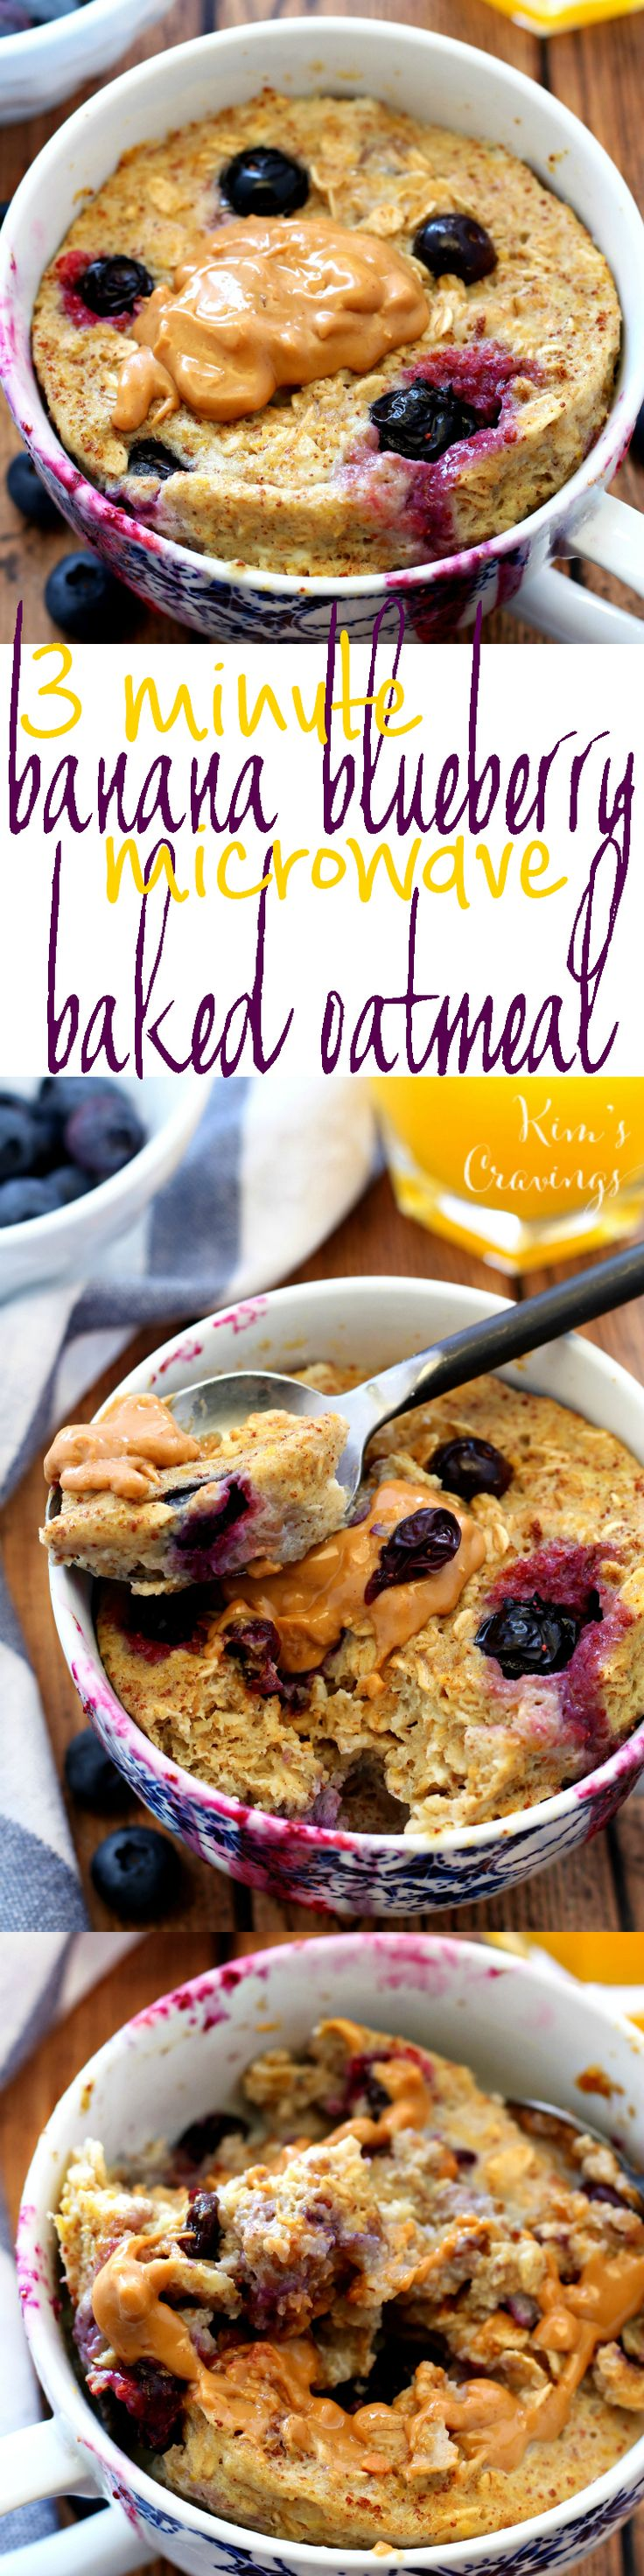 Cooking without a stove - Blueberry Banana Microwave Baked Oatmeal In A Mug